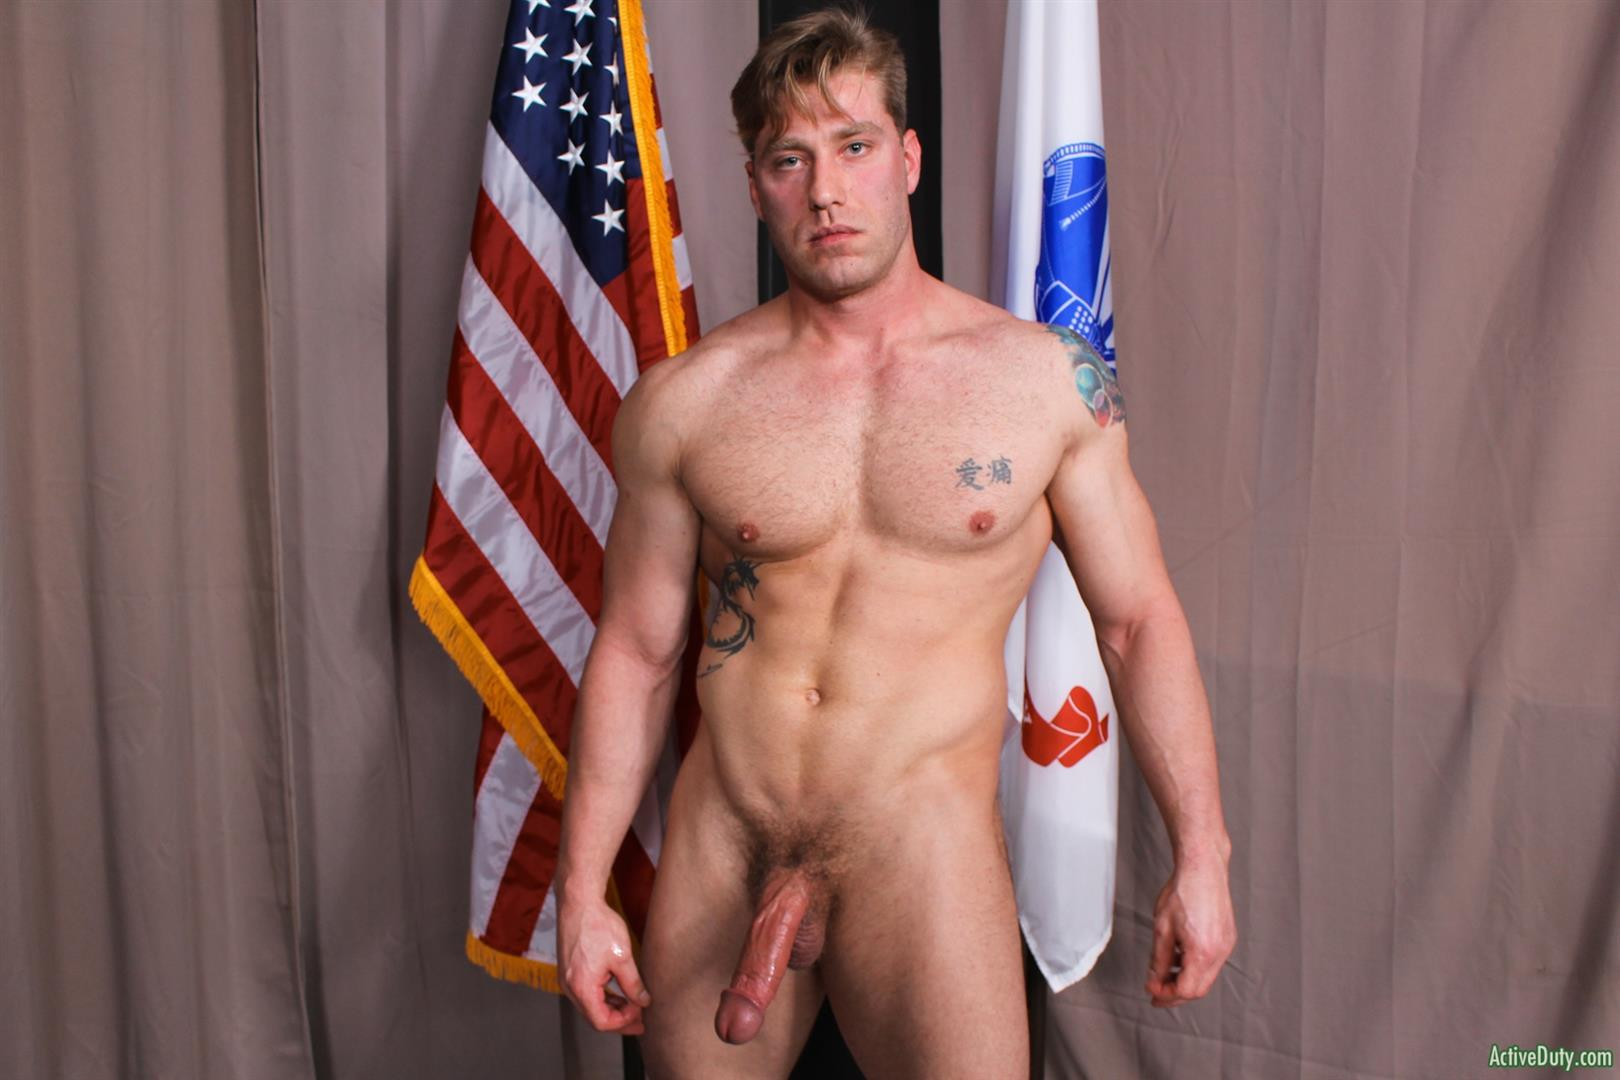 Active-Duty-John-Hawkins-Muscular-Air-Force-Guy-Big-Cock-Jerk-Off-Video-11 US Air Force Airman Strokes His Big Hard Cock